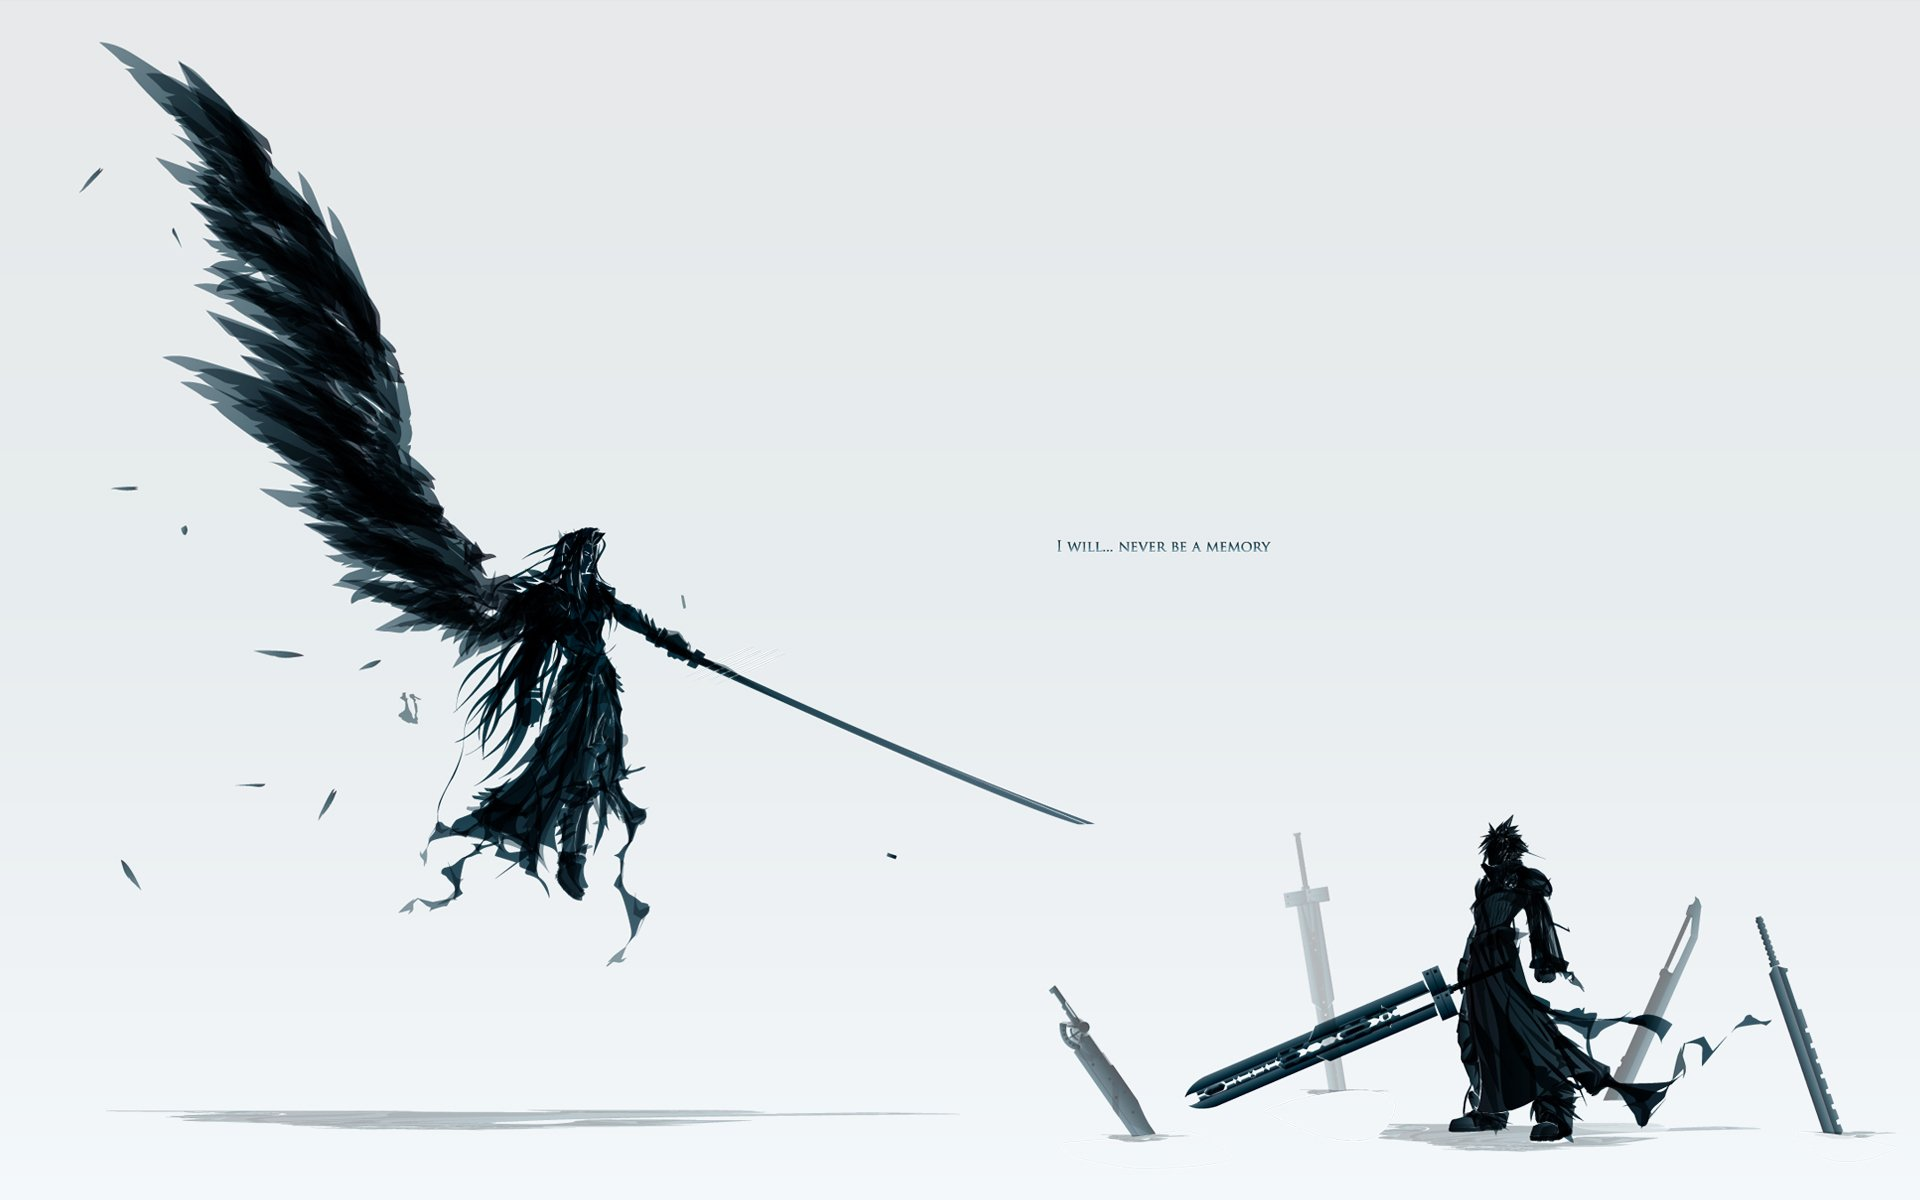 Videospel - Final Fantasy  Zwaard Sephiroth (Final Fantasy) Ronnie Ff7 Cloud Strife Devil Wallpaper